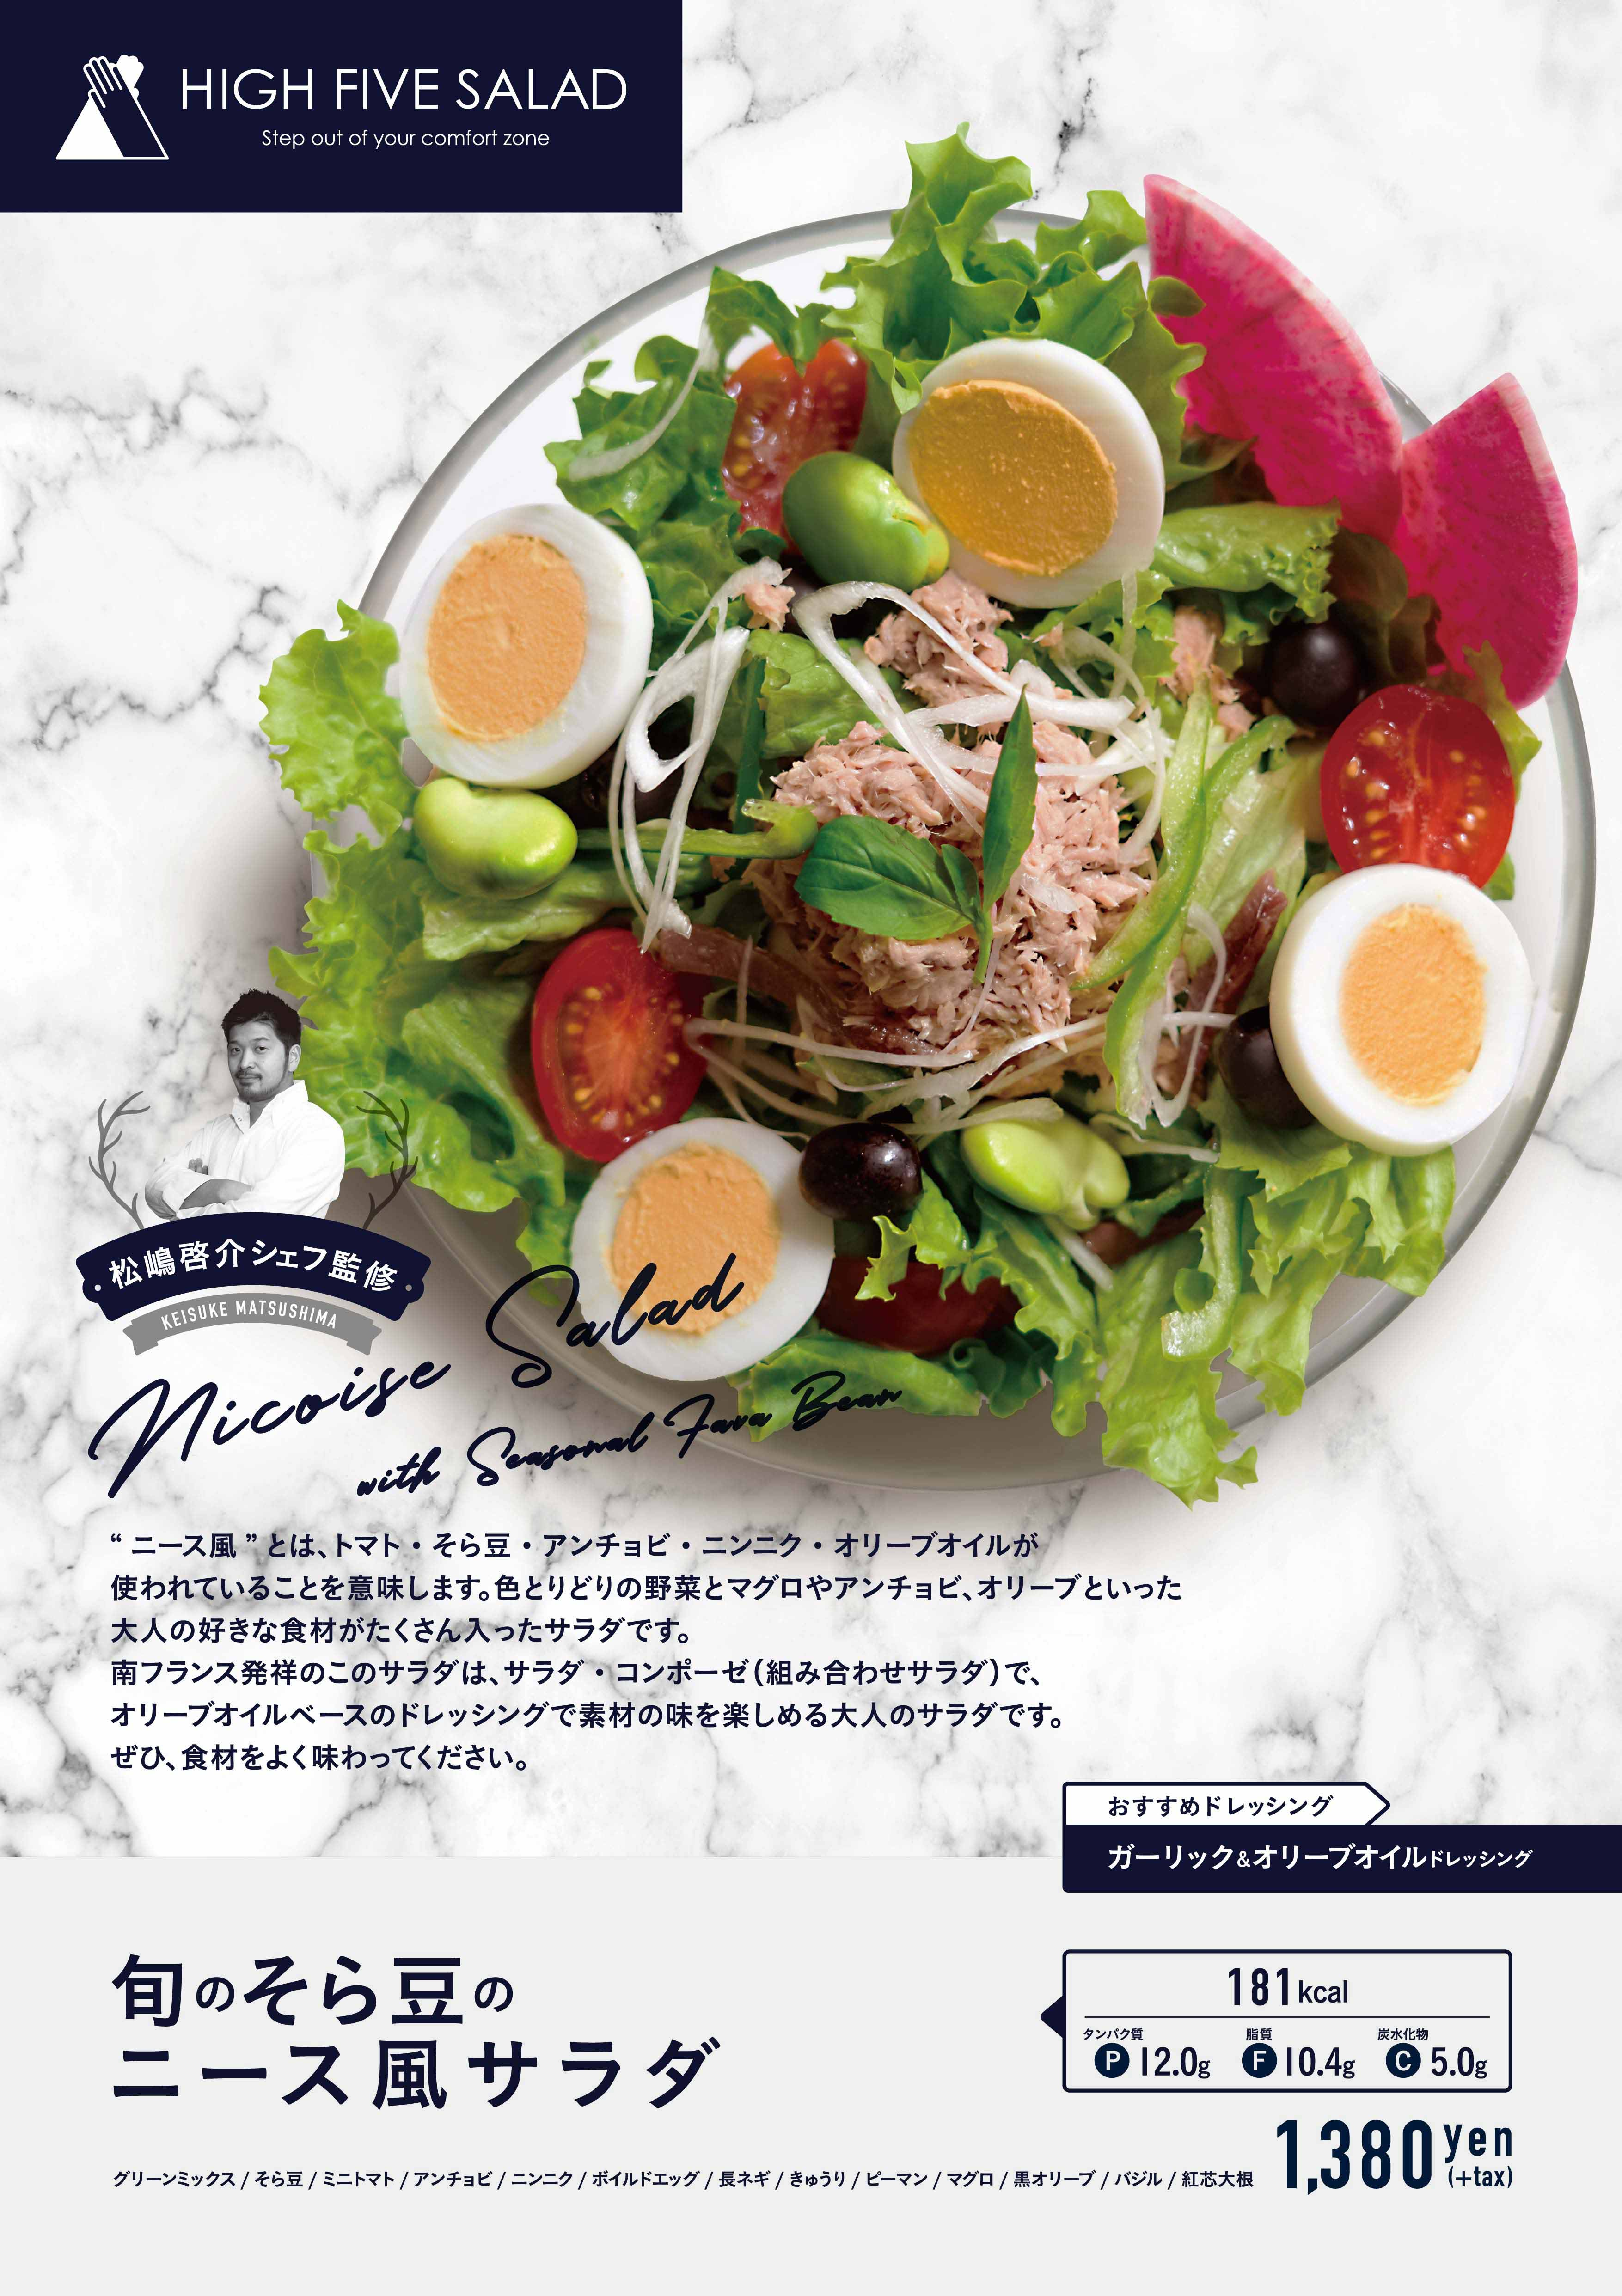 【HIGH FIVE SALAD】ポスター (2020)